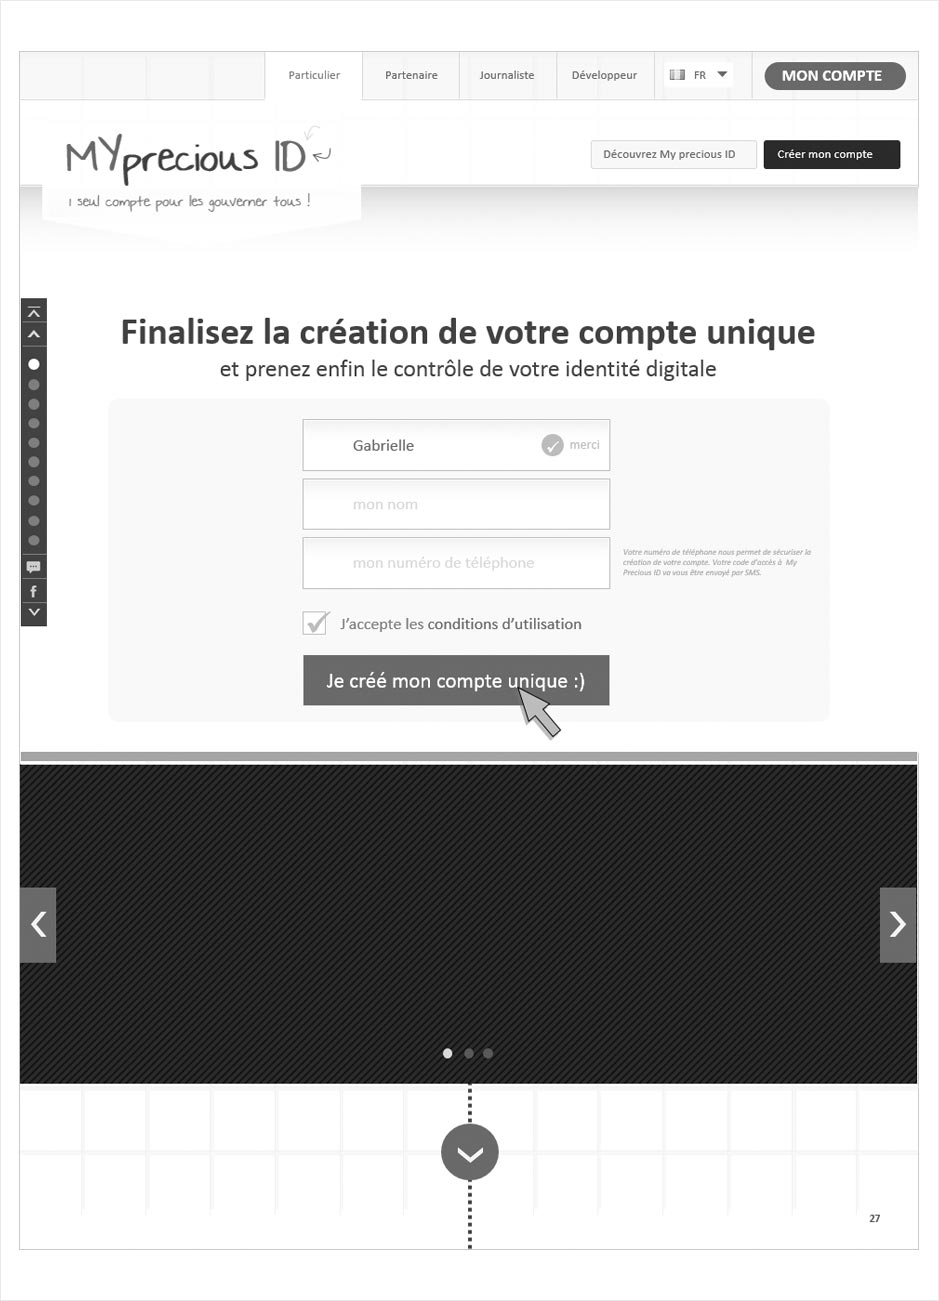 wireframe principe d'inscription mypreciousid